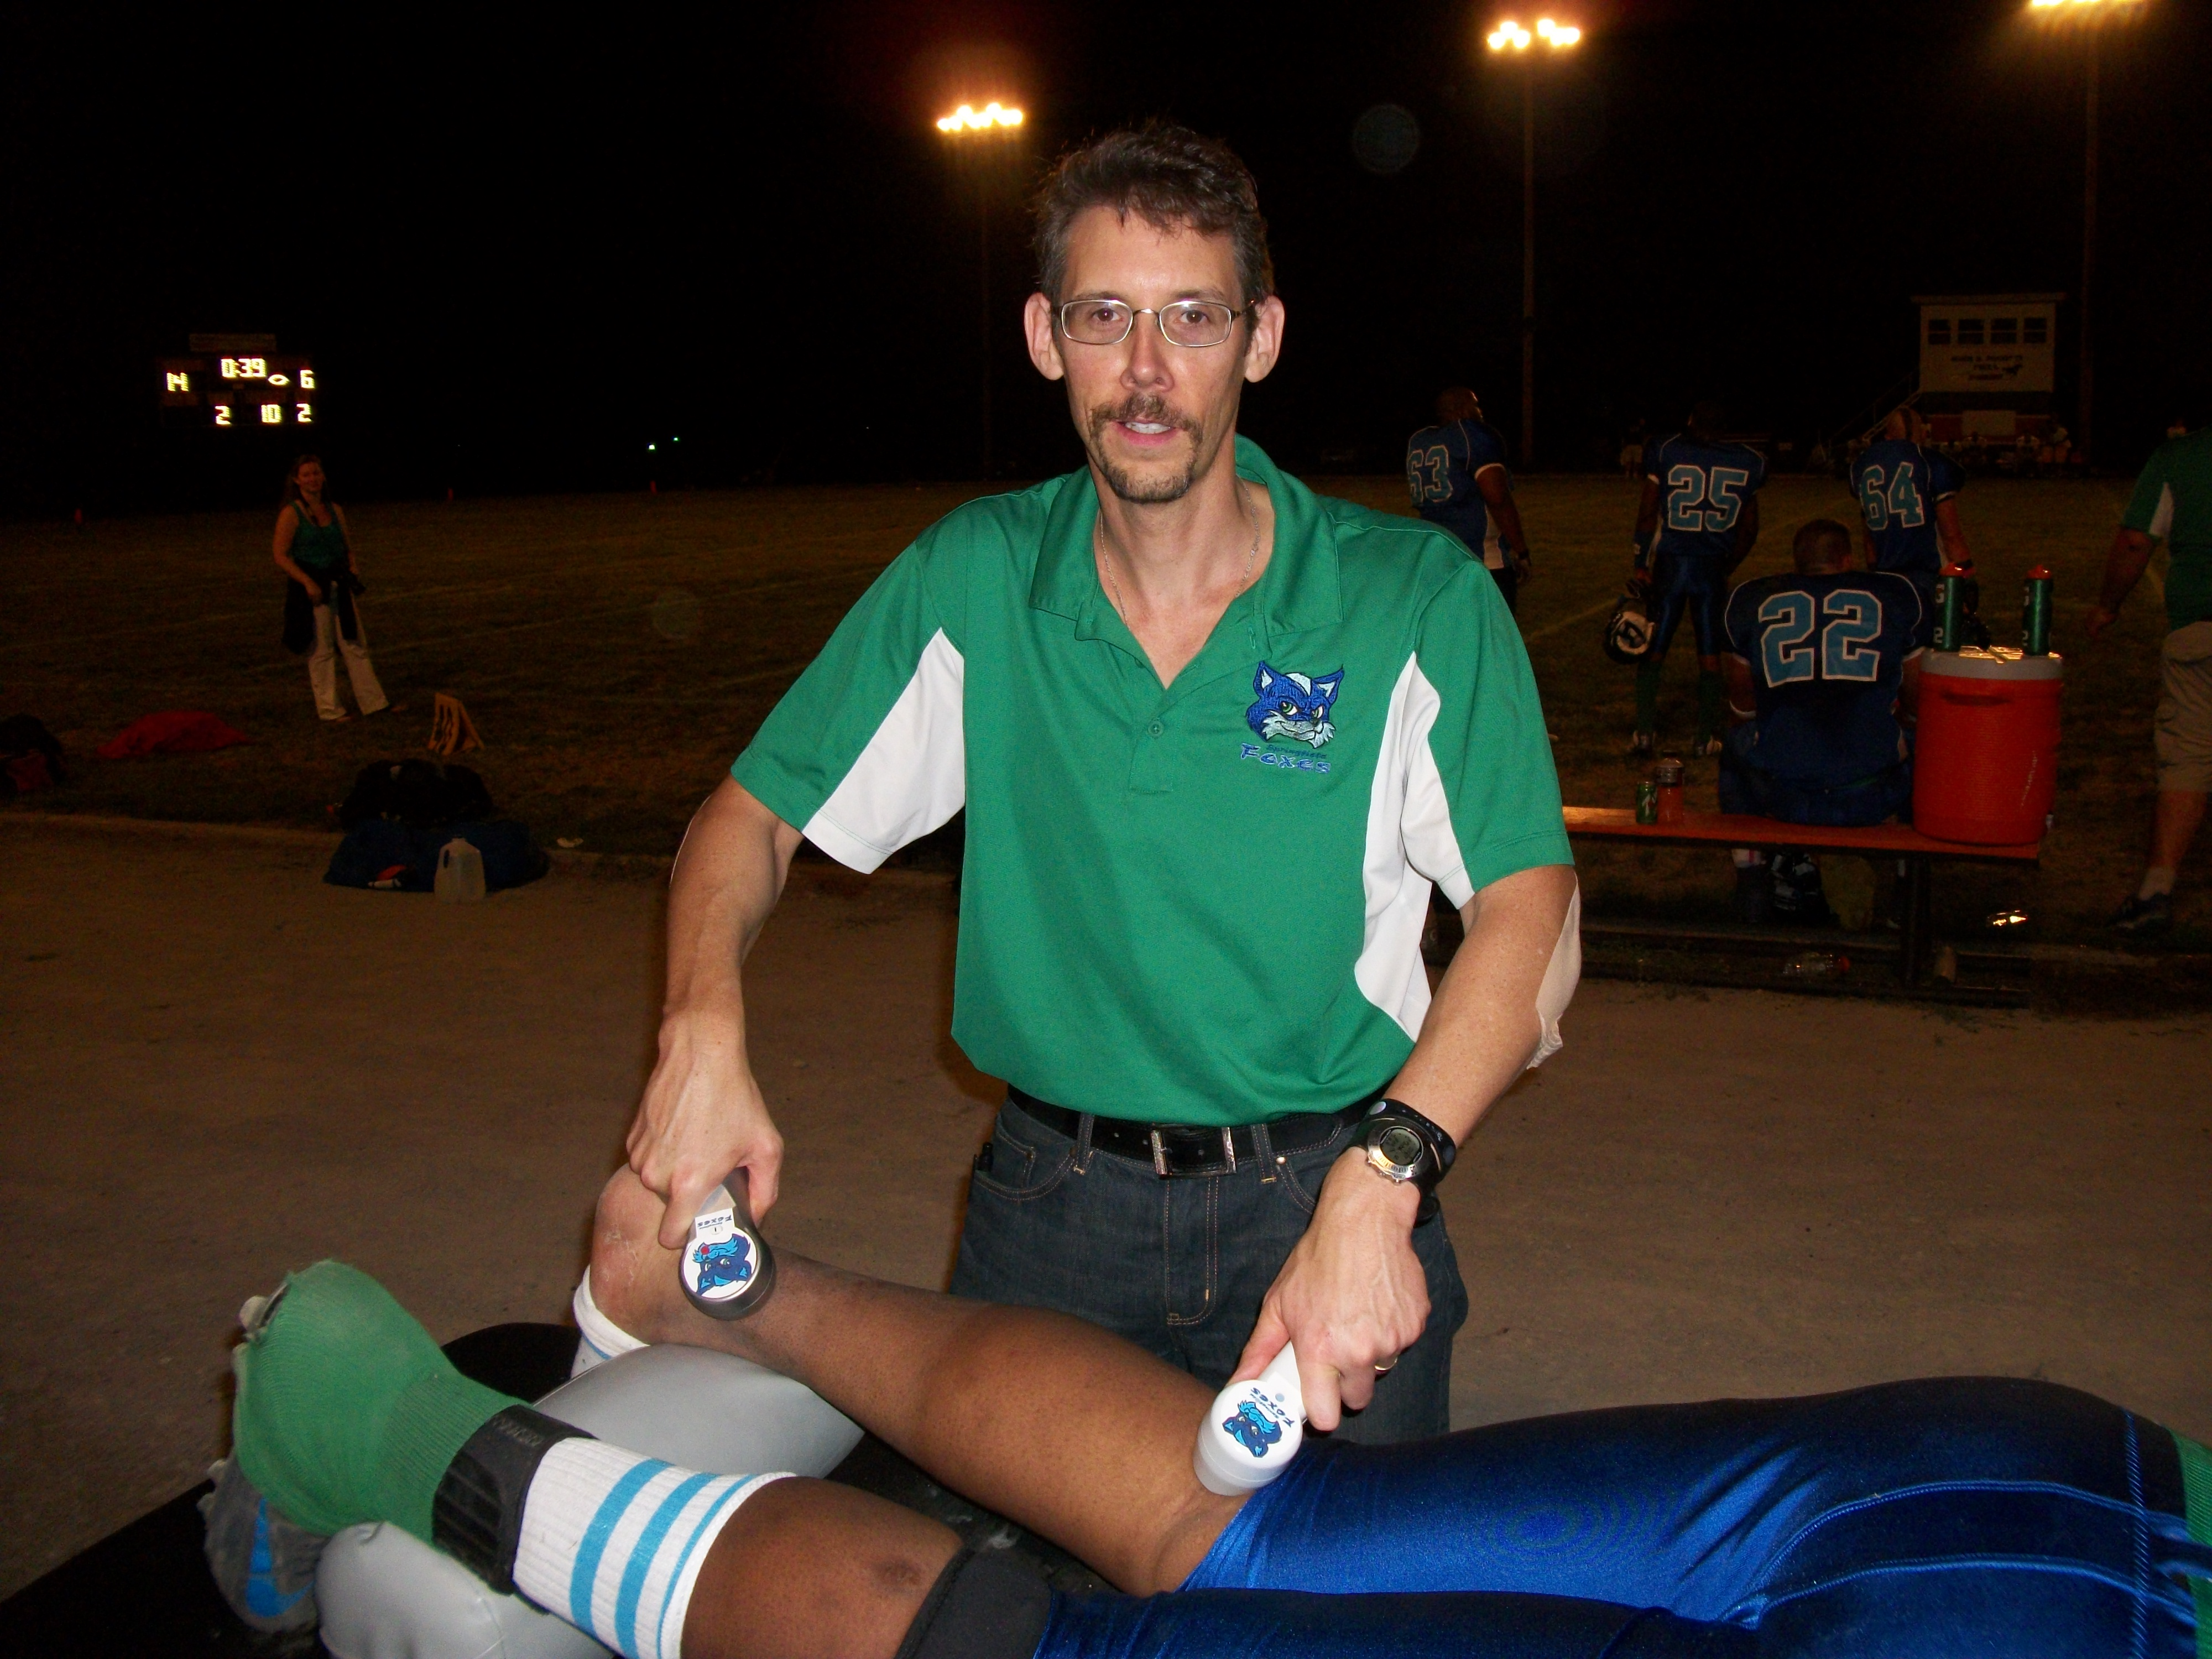 Dr. Austin, team D.C. and team trainer, utilizes two of his custom Springfield Foxes cold laser therapy devices (including his new PainBeGone Laser) on a player's Achilles injury.  Both laser devices have a depth of penetration of 5 cm.  Both are outstanding when it comes to reducing pain, swelling, inflammation and edema.